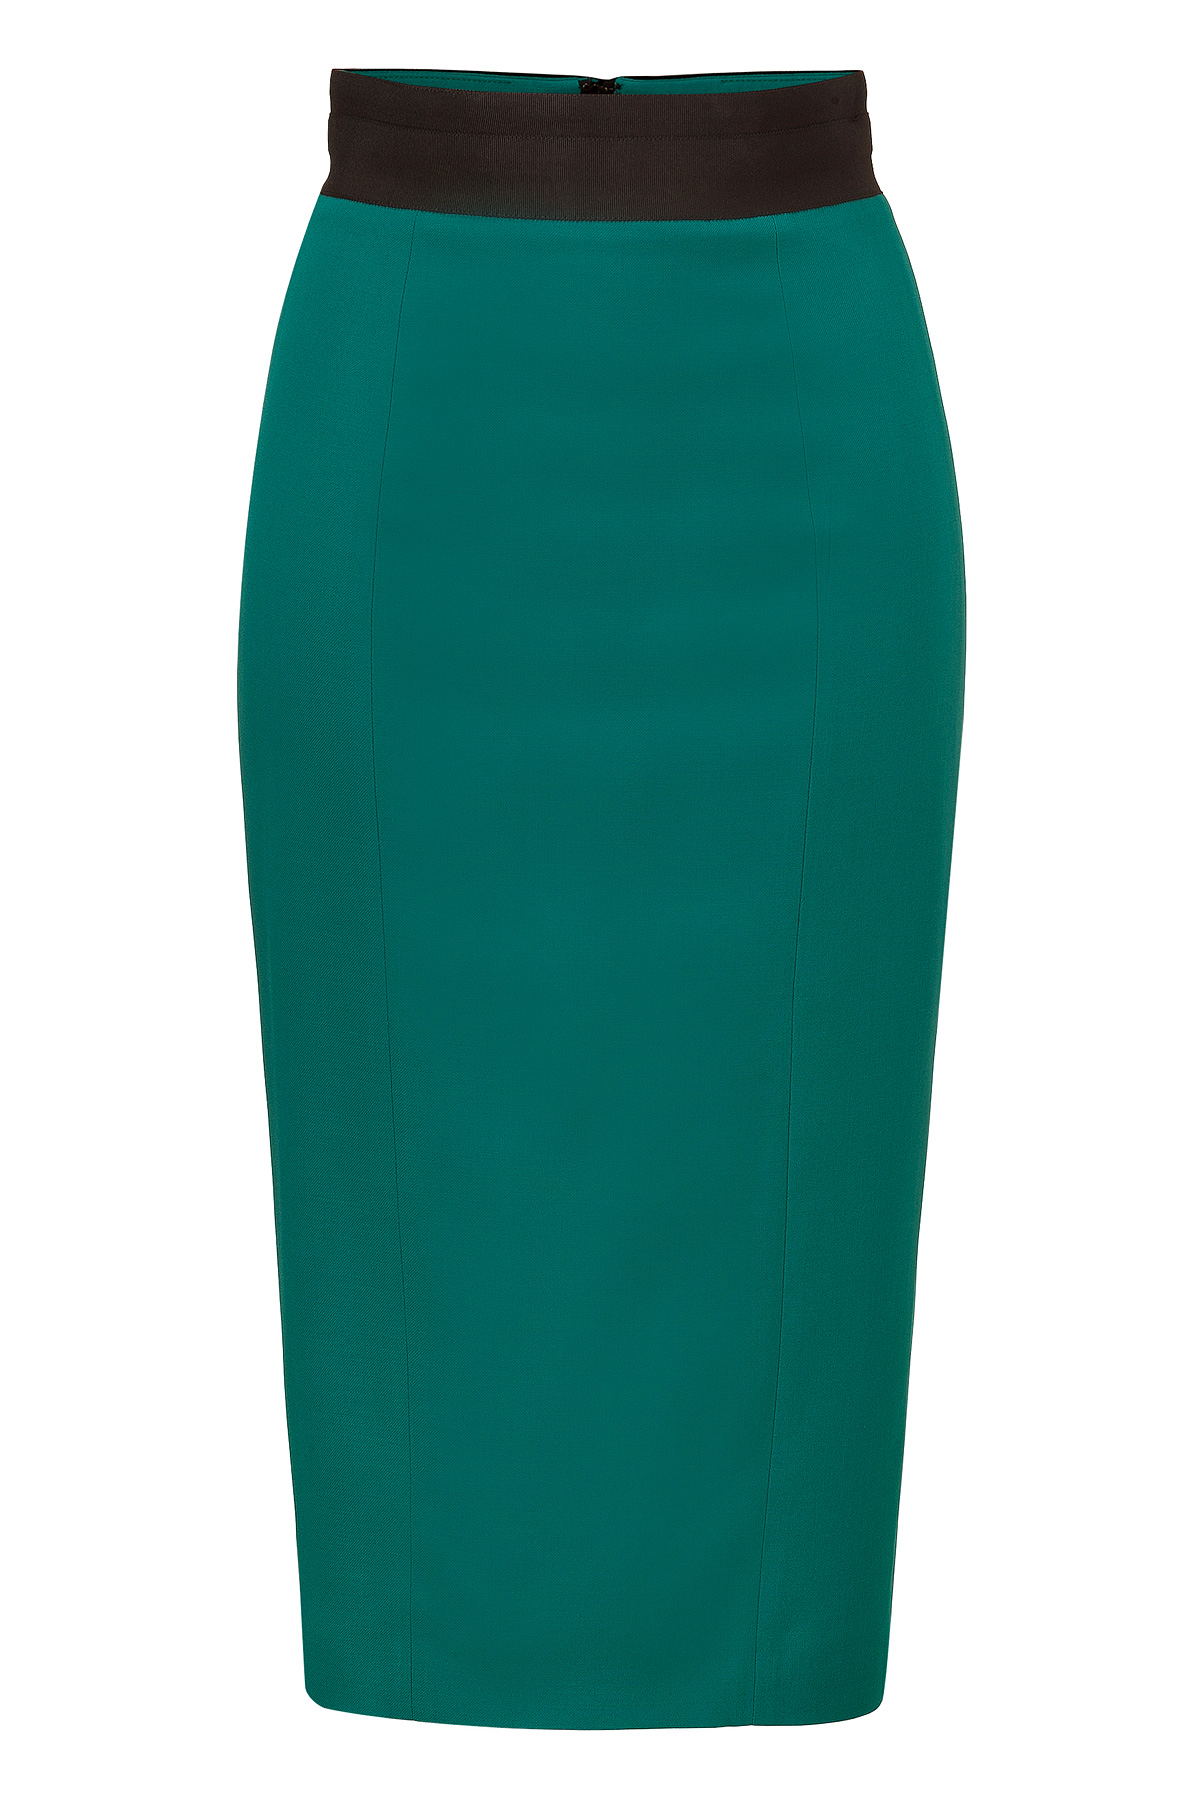 green pencil skirt related keywords suggestions green